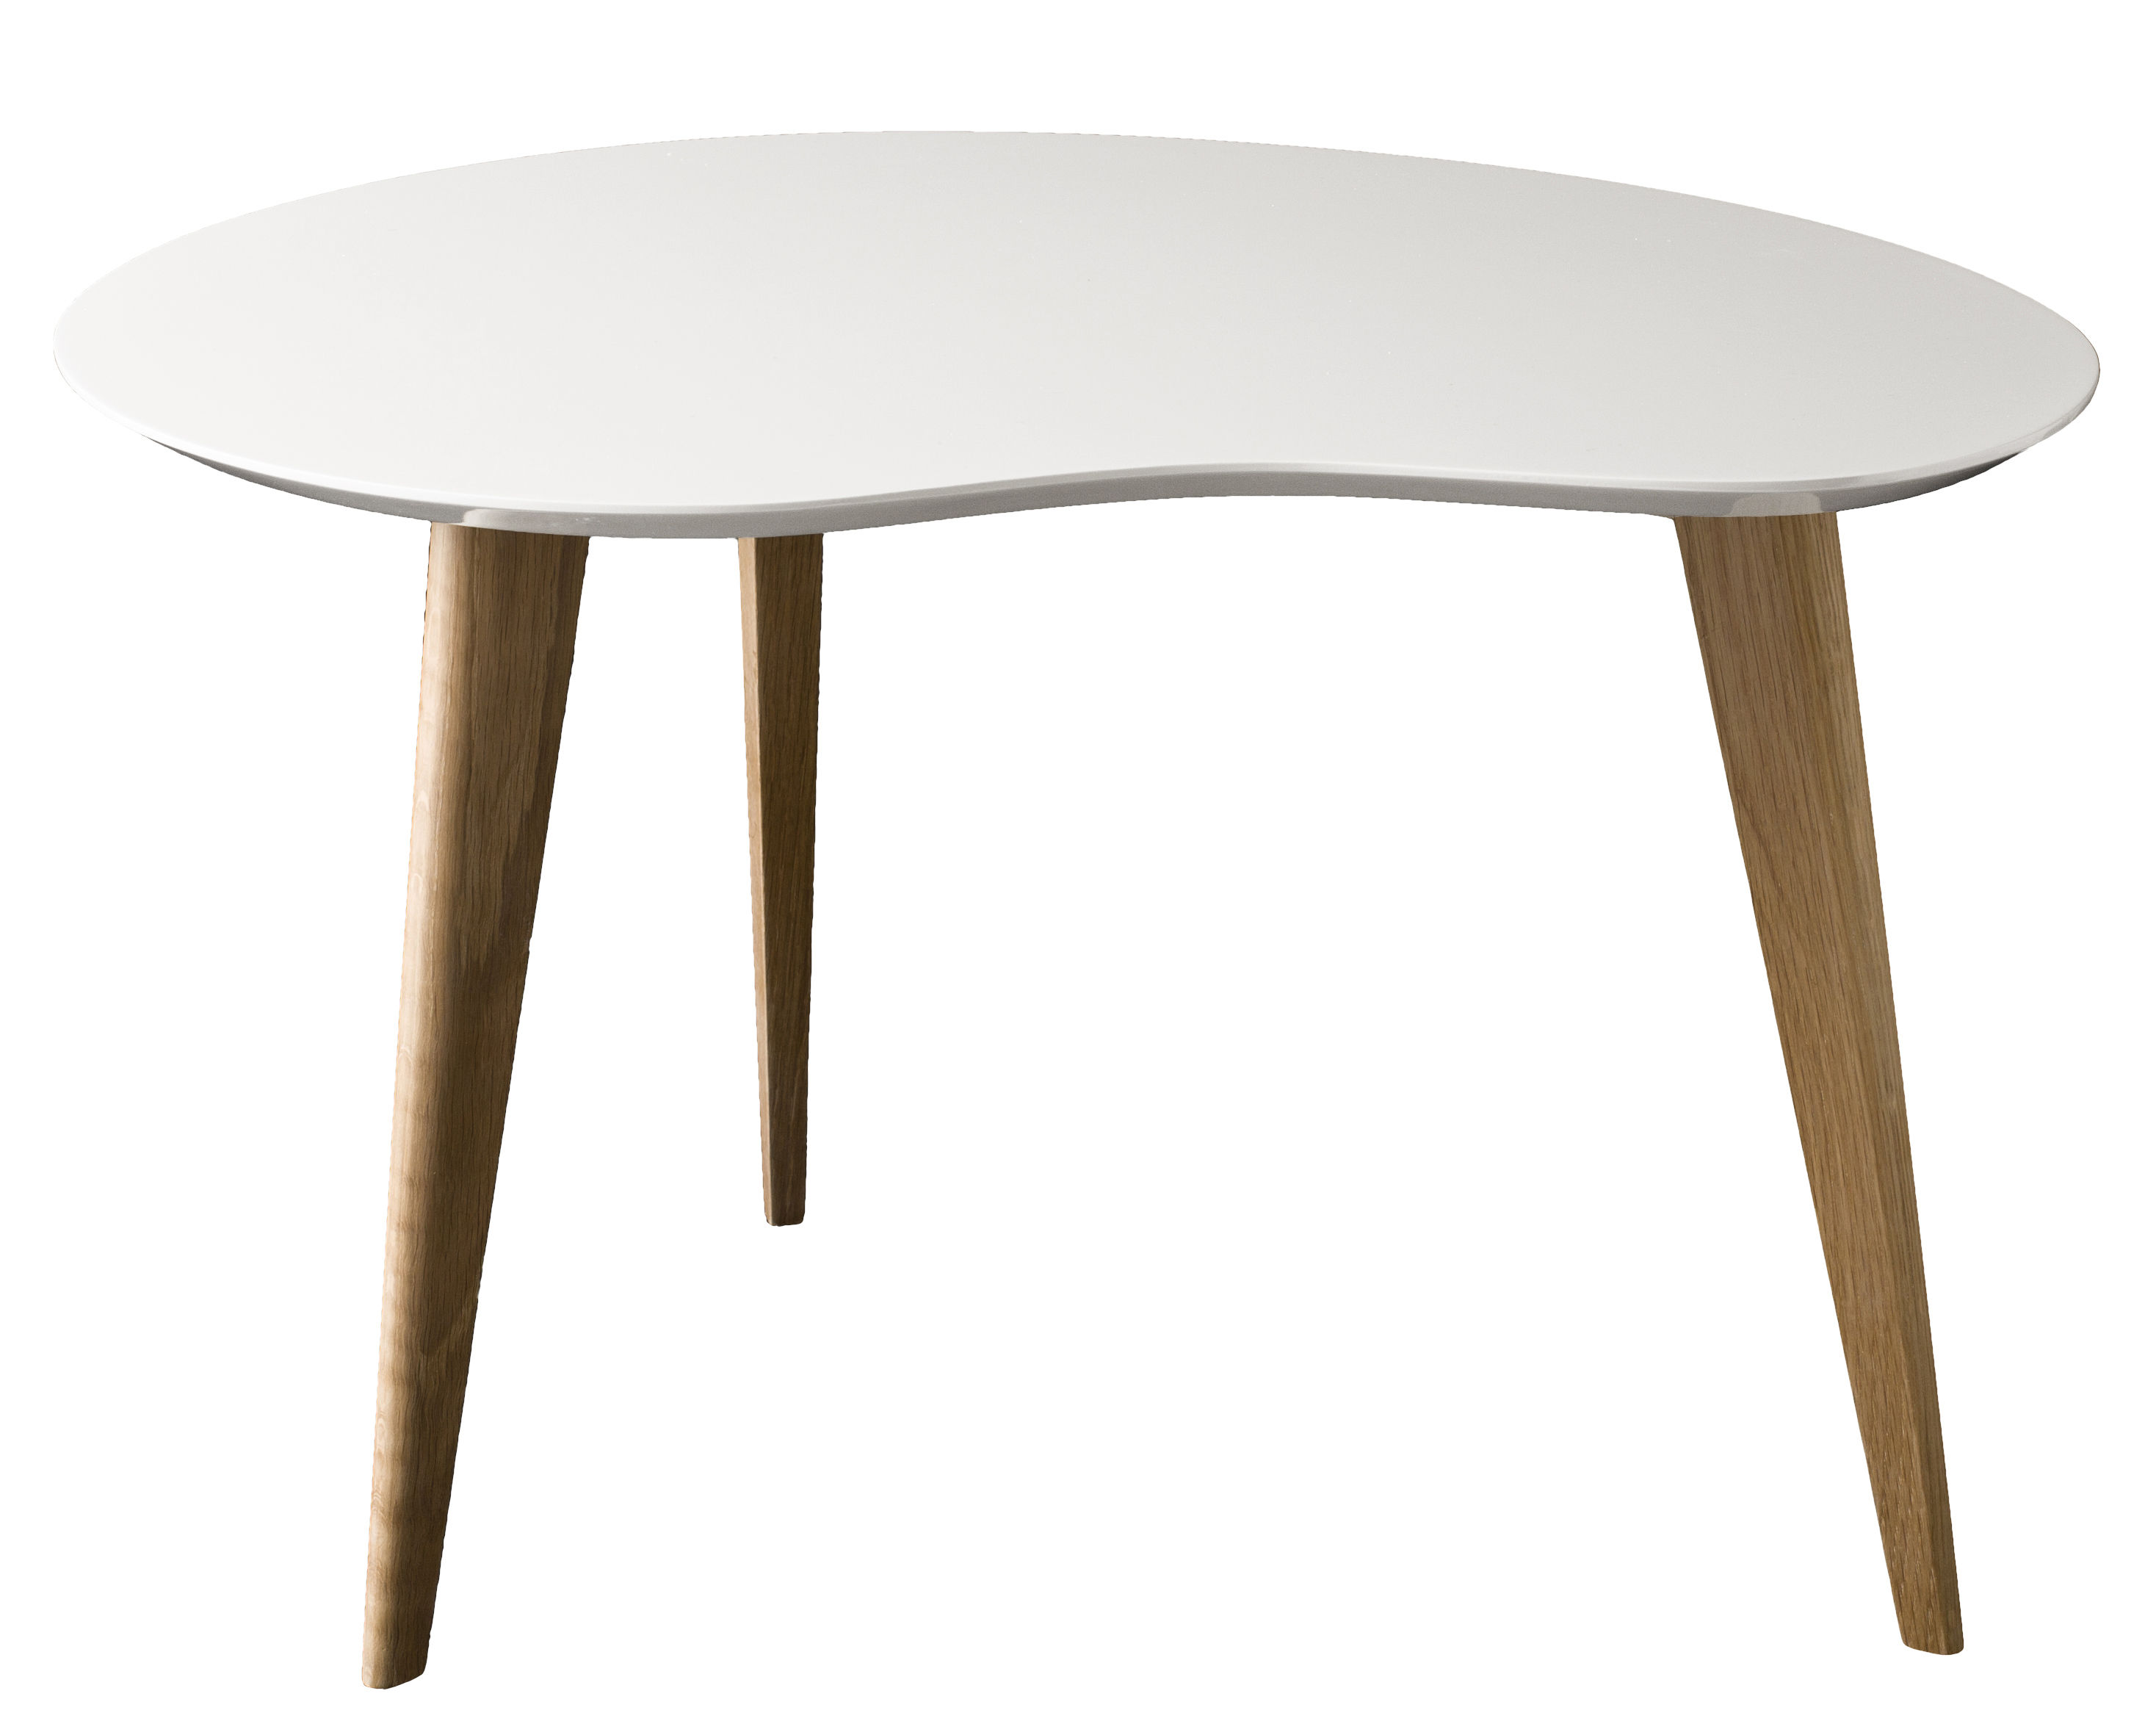 Table basse lalinde haricot large blanc pieds ch ne for Table basse haricot